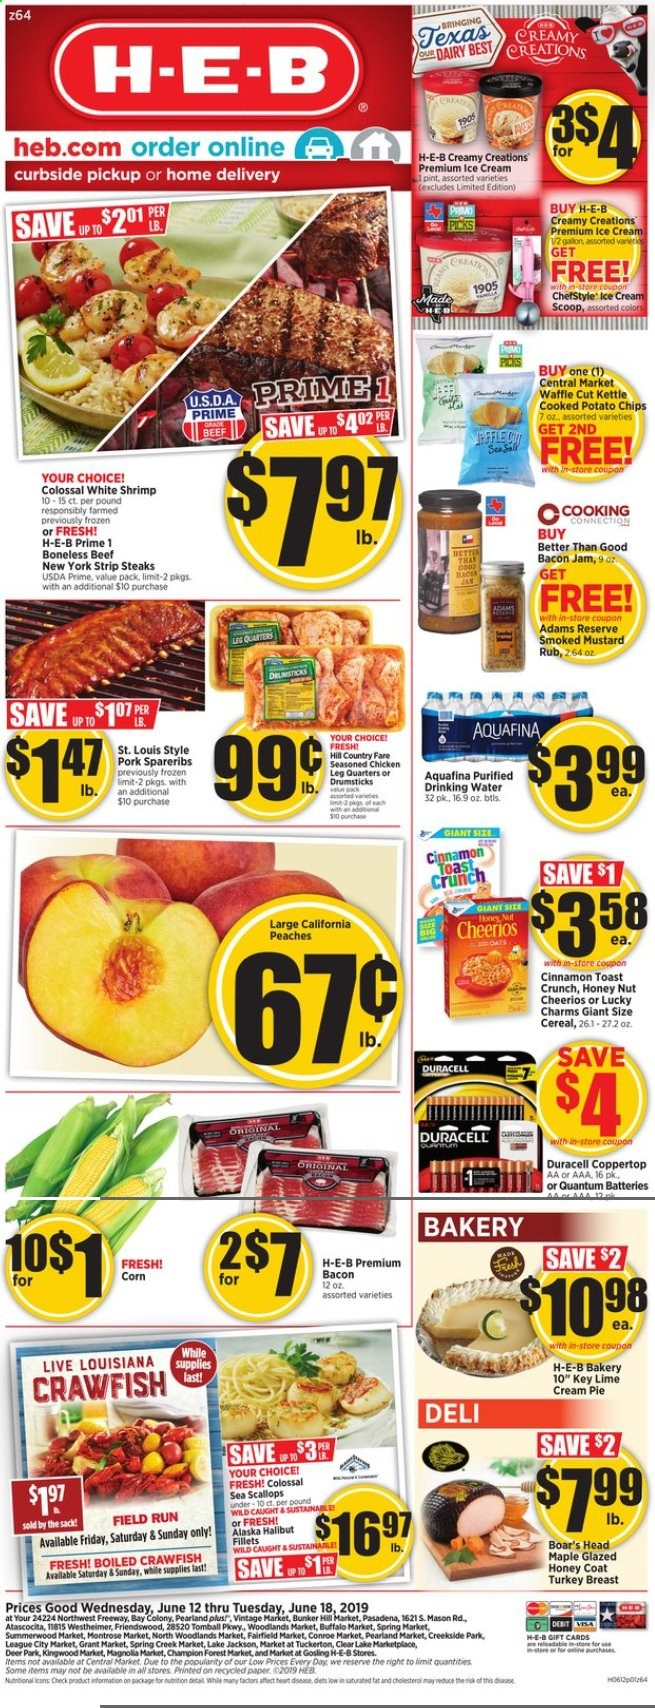 H-E-B Flyer  - 06.12.2019 - 06.18.2019. Page 1.